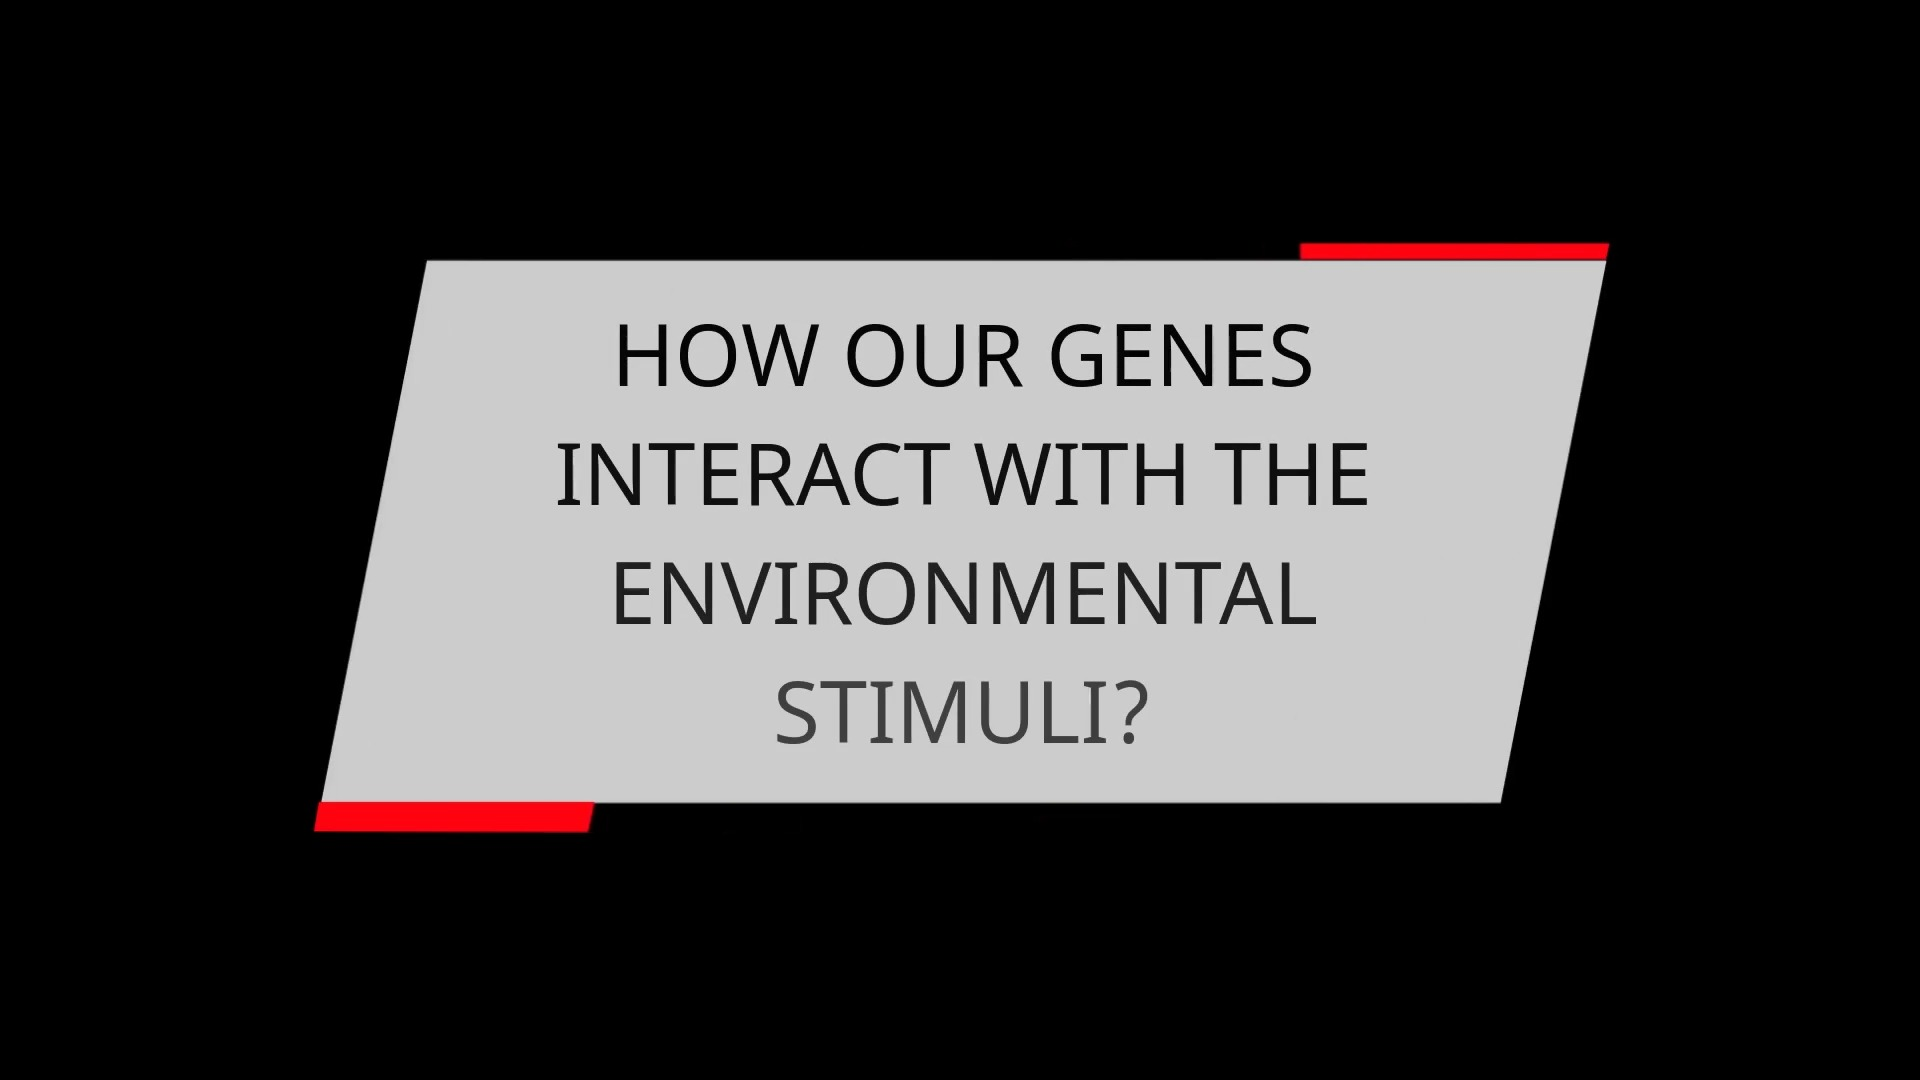 HOW OUR GENES INTERACT WITH ENVIRONMENTAL STIMULI